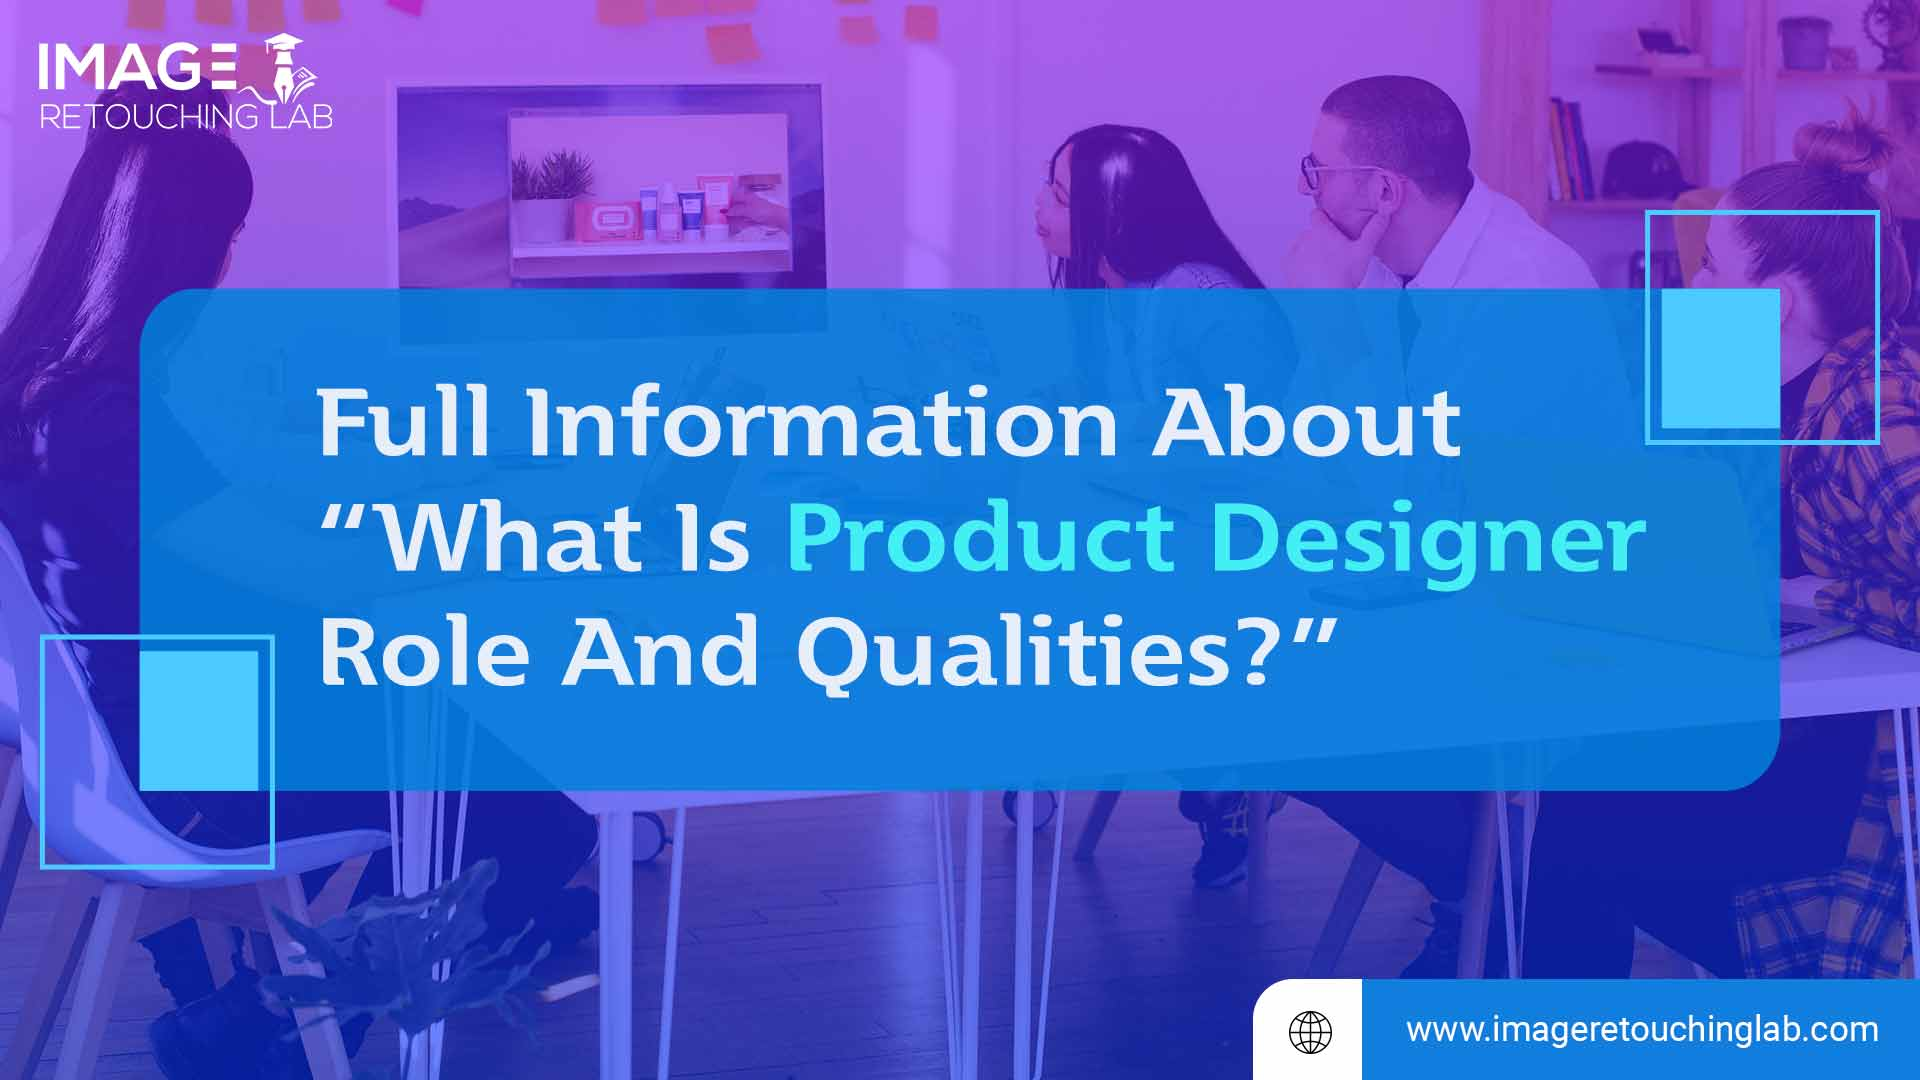 Full Information About What Is Product Designer Role And Qualities